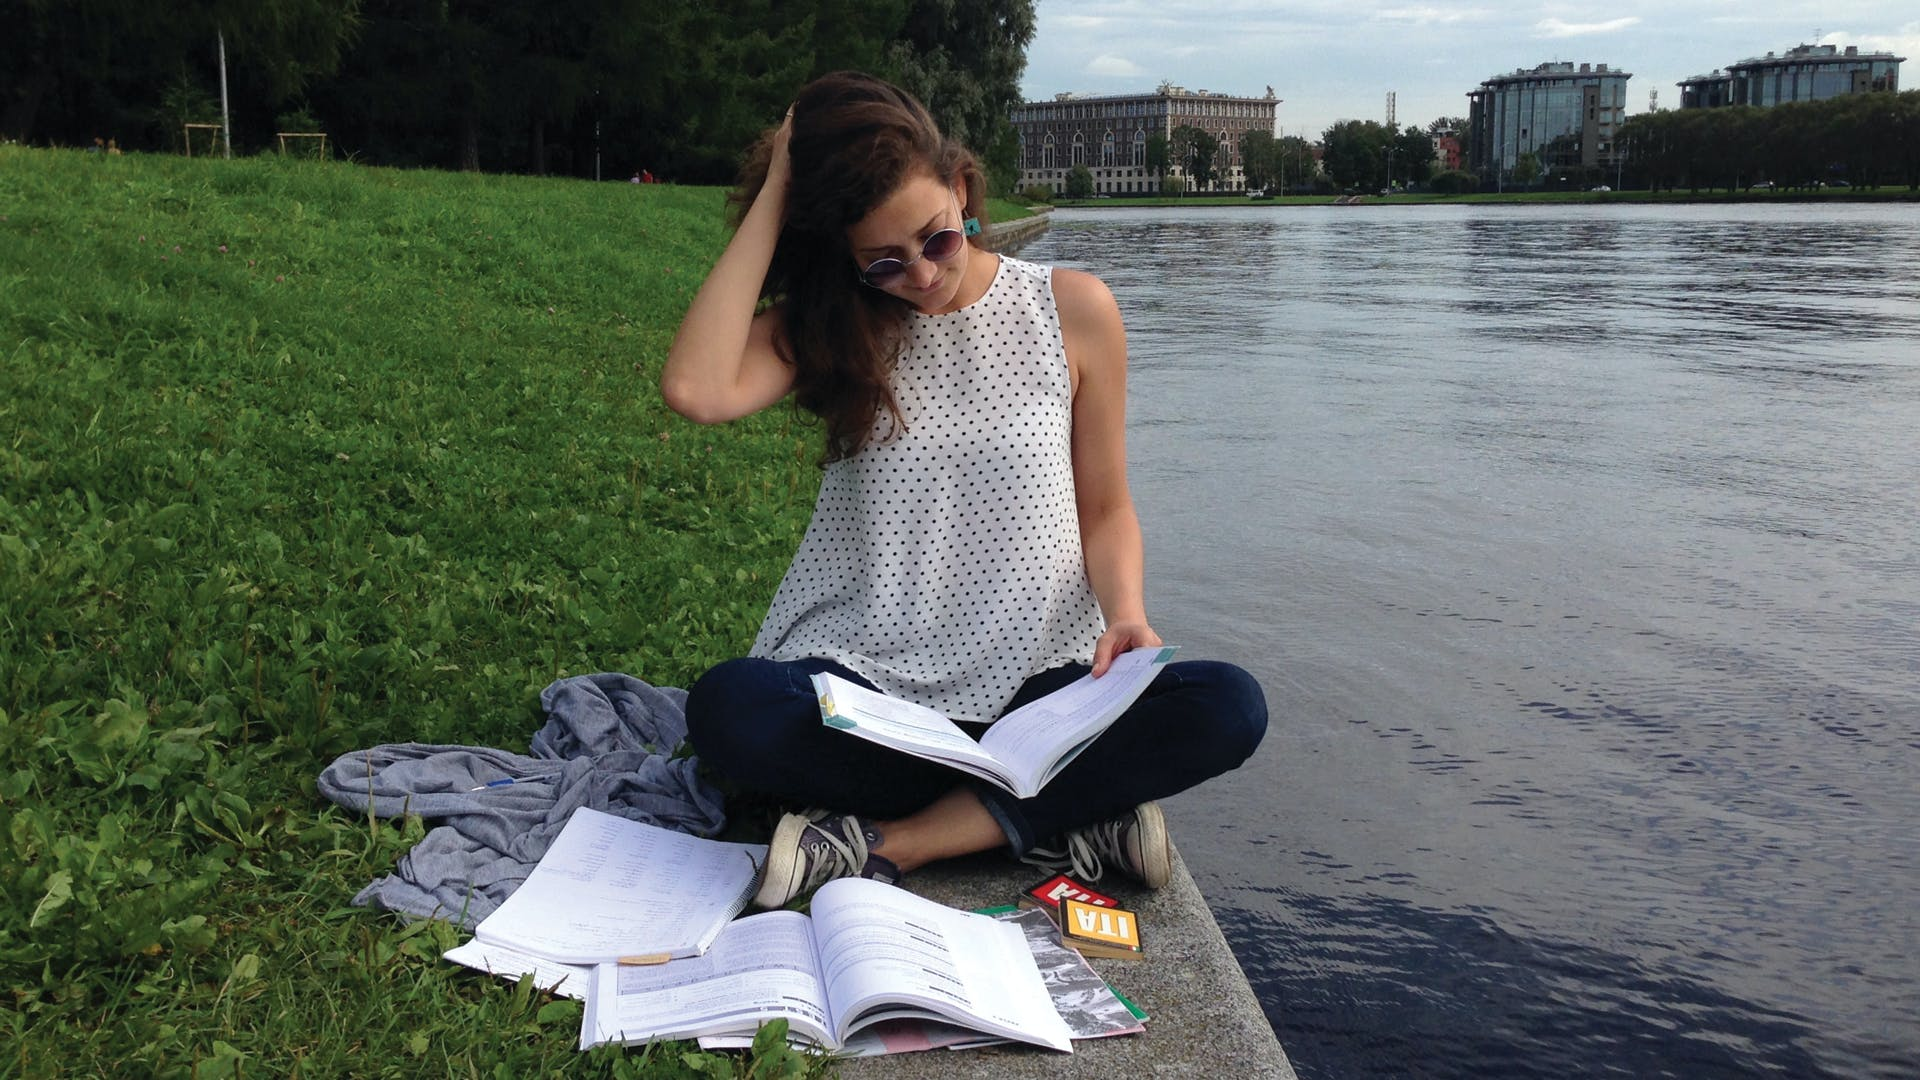 Uncover These Study Methods That Will Make You Feel Alive During Dead Week